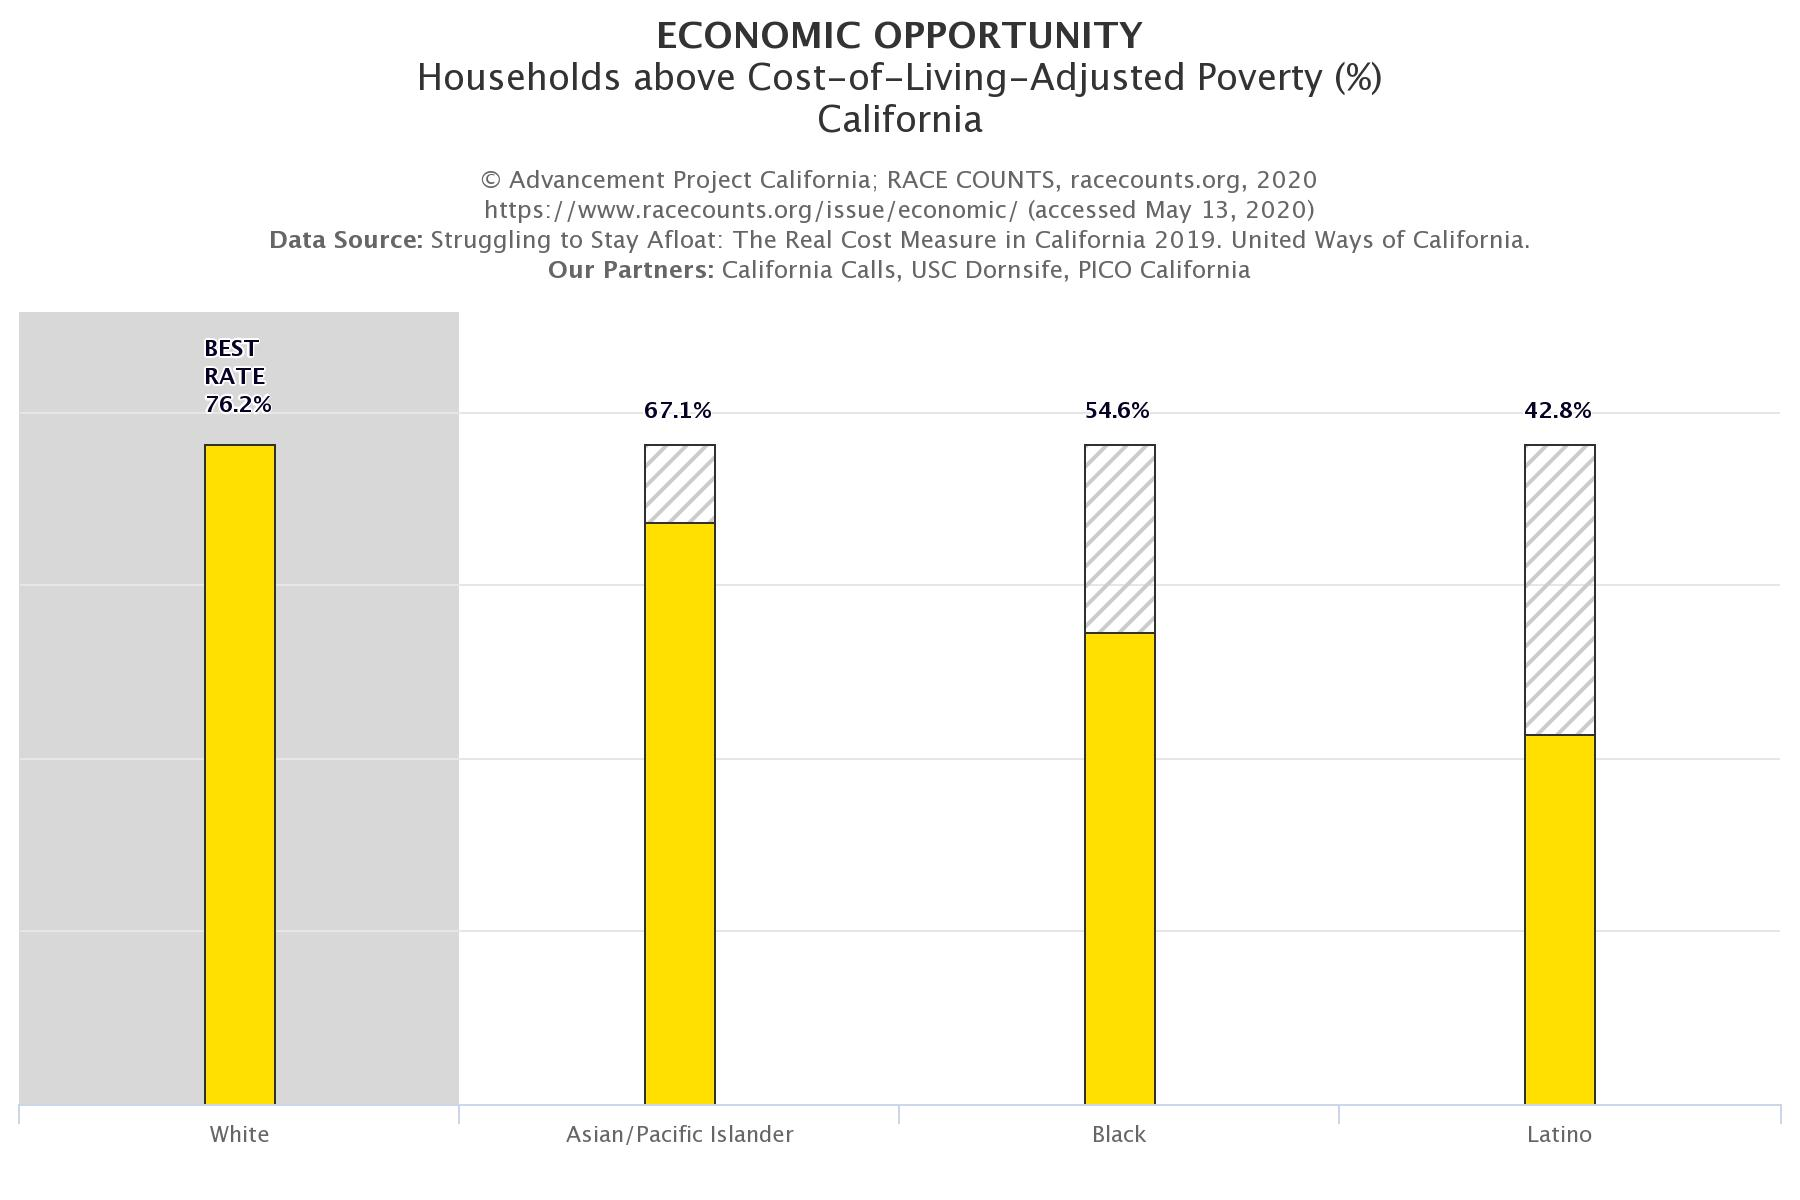 racecounts-economic-opportunity-cost-of-living-adjusted-poverty-california